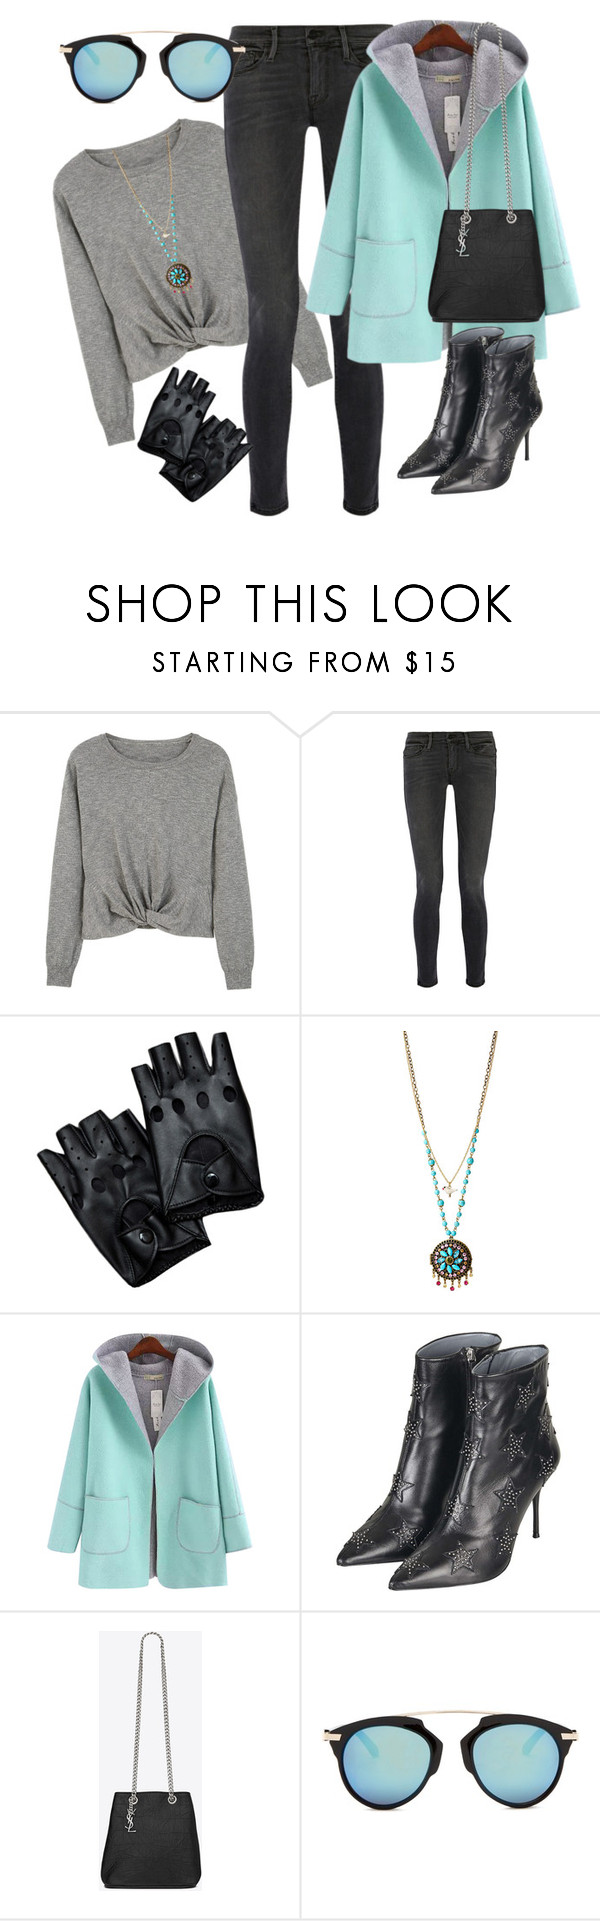 """""""softened tuff girl"""" by ffendi ❤ liked on Polyvore featuring MANGO, Frame Denim, Betsey Johnson, Chicnova Fashion, Topshop and Yves Saint Laurent"""